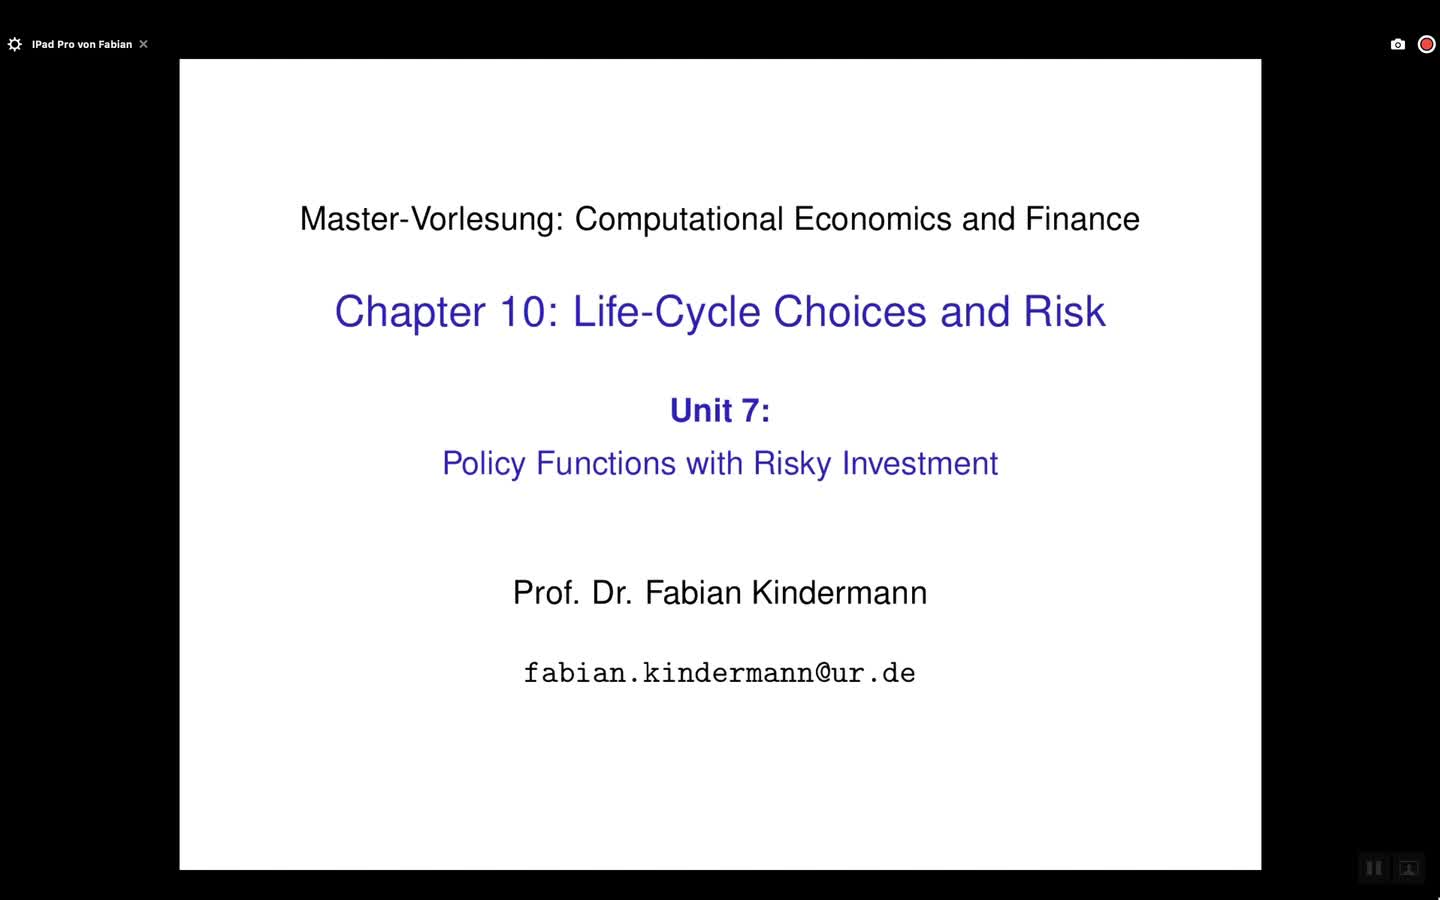 Chapter 10 - Unit 7 - Policy Functions with Risky Investment